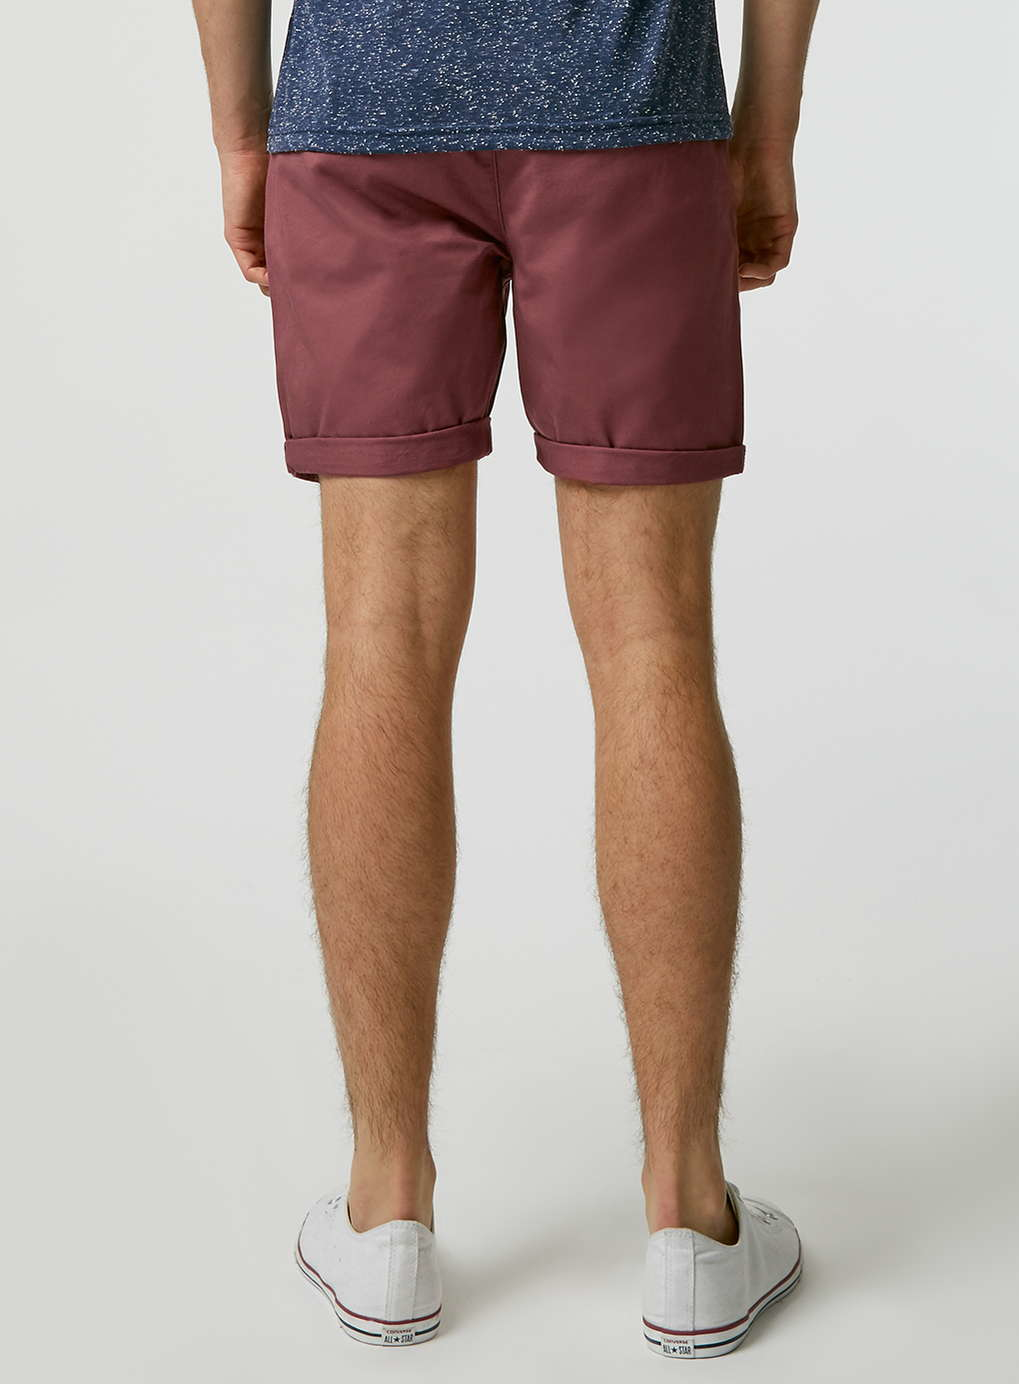 The Crimson red Chino Shorts is a must-see from our latest Men's collection and is available to buy online at GANT USA.